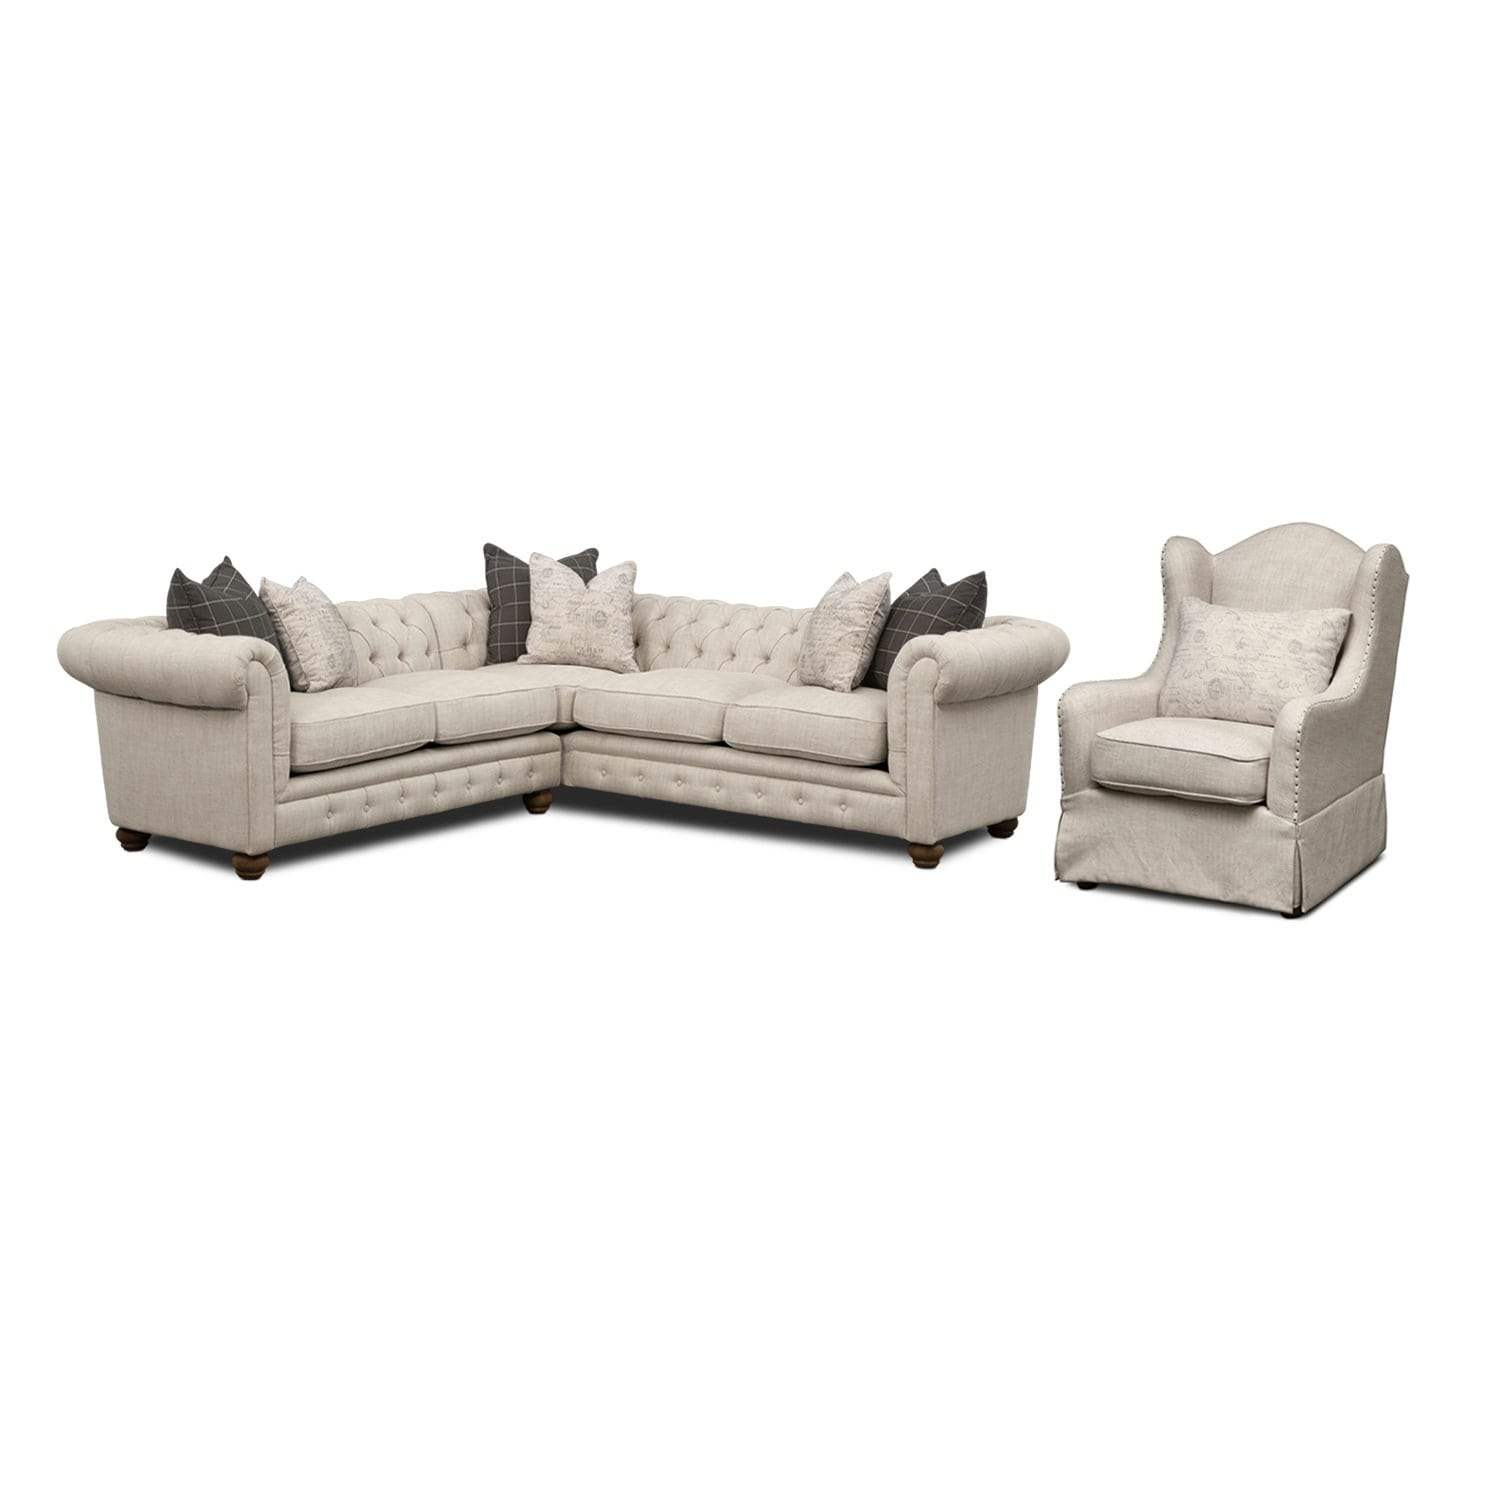 Living Room Furniture - Madeline Beige 2 Pc. Sectional w/ Accent Chair